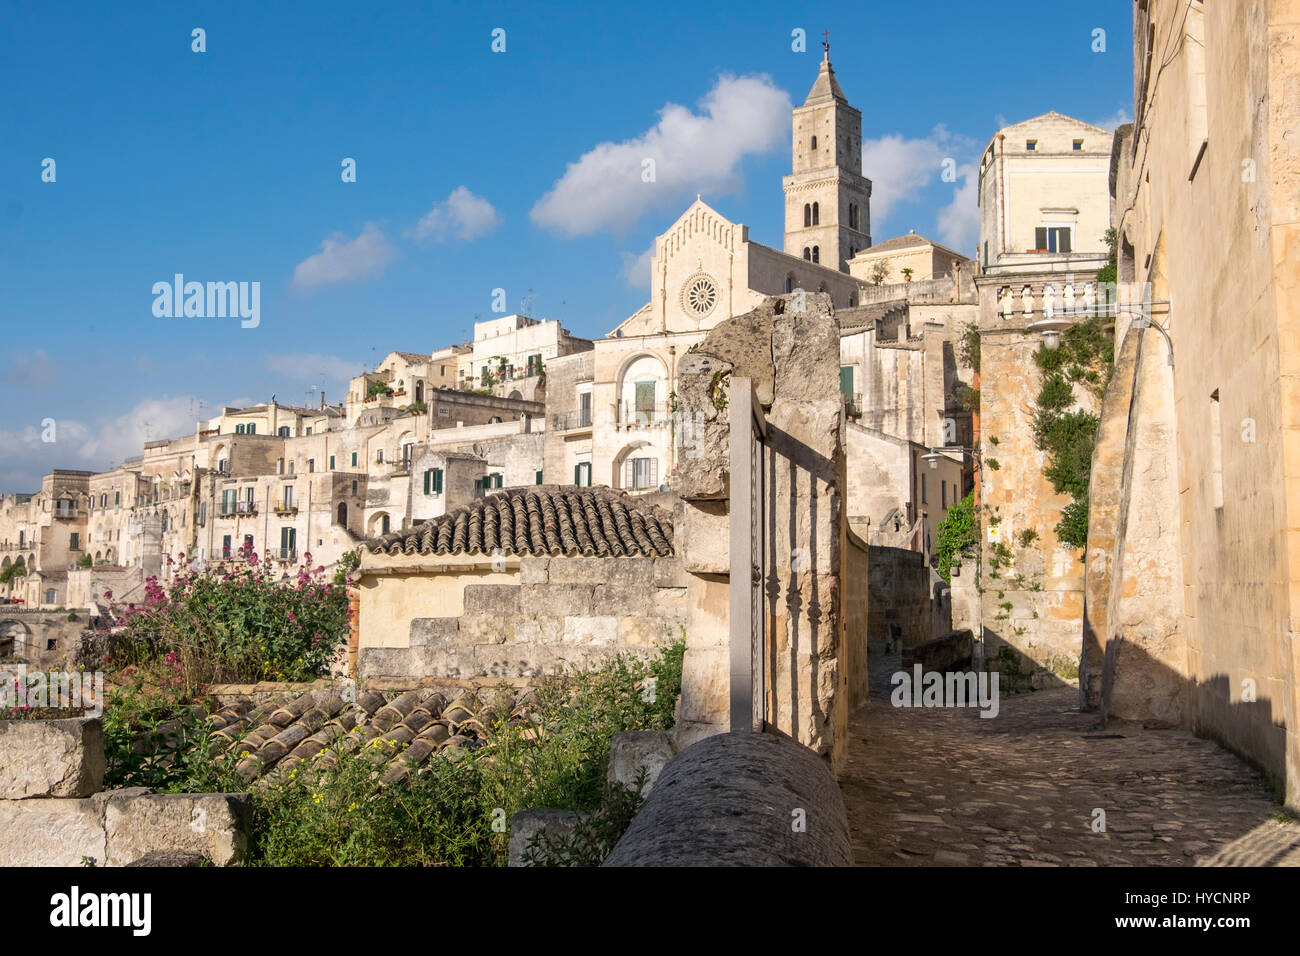 Ancient Italia town of Matera, World Heritage Site and European Capital of Culture for 2019. - Stock Image